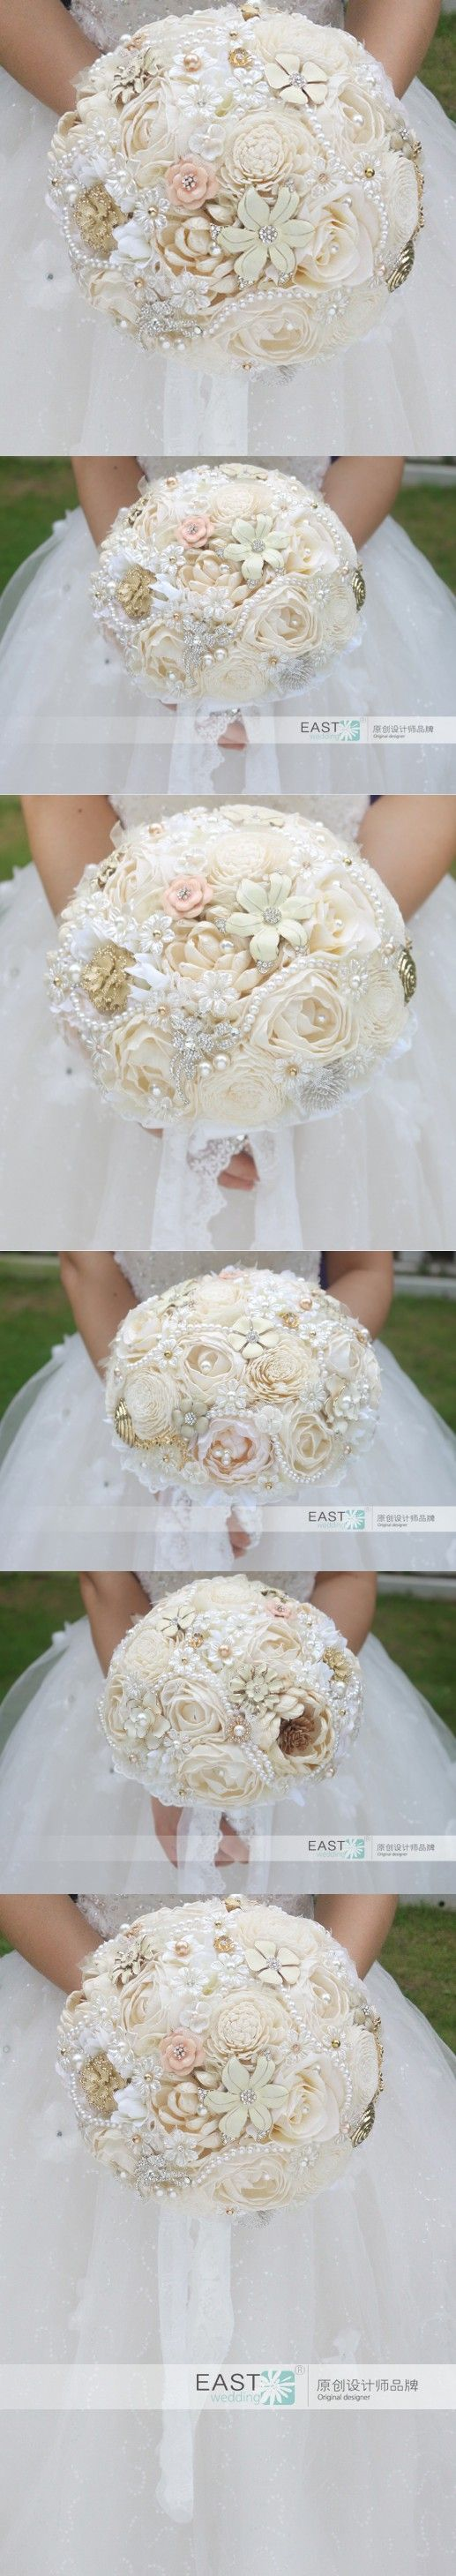 1940's style wedding bouquets   best Wedding BouquetsNot Floral images on Pinterest  Wedding